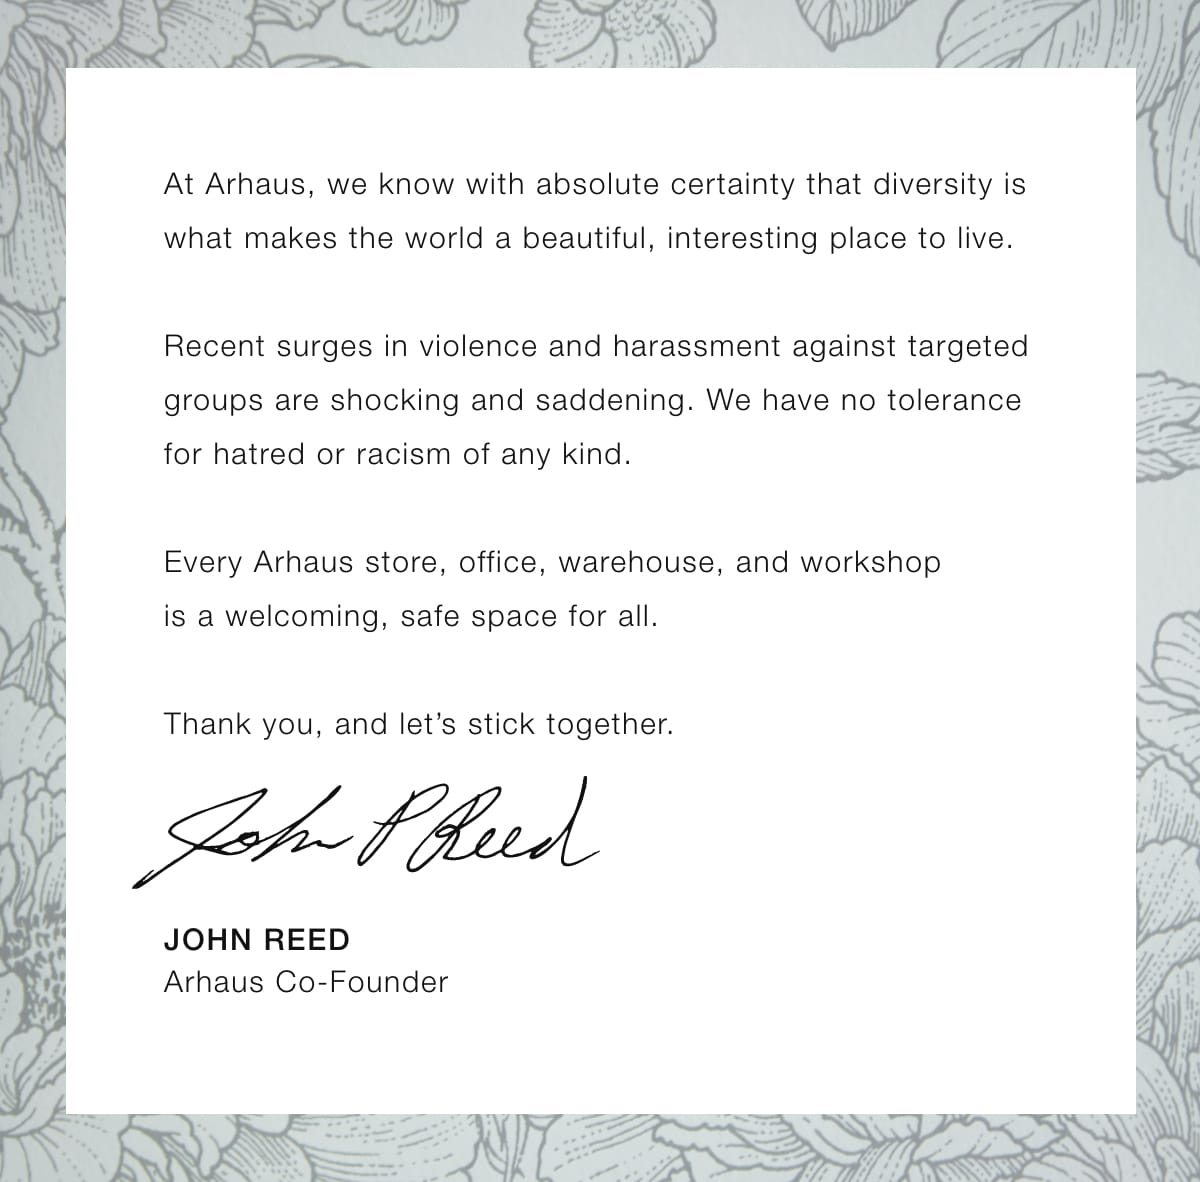 Every Arhaus store, office, warehouse, and workshop is a welcoming, safe space for all.